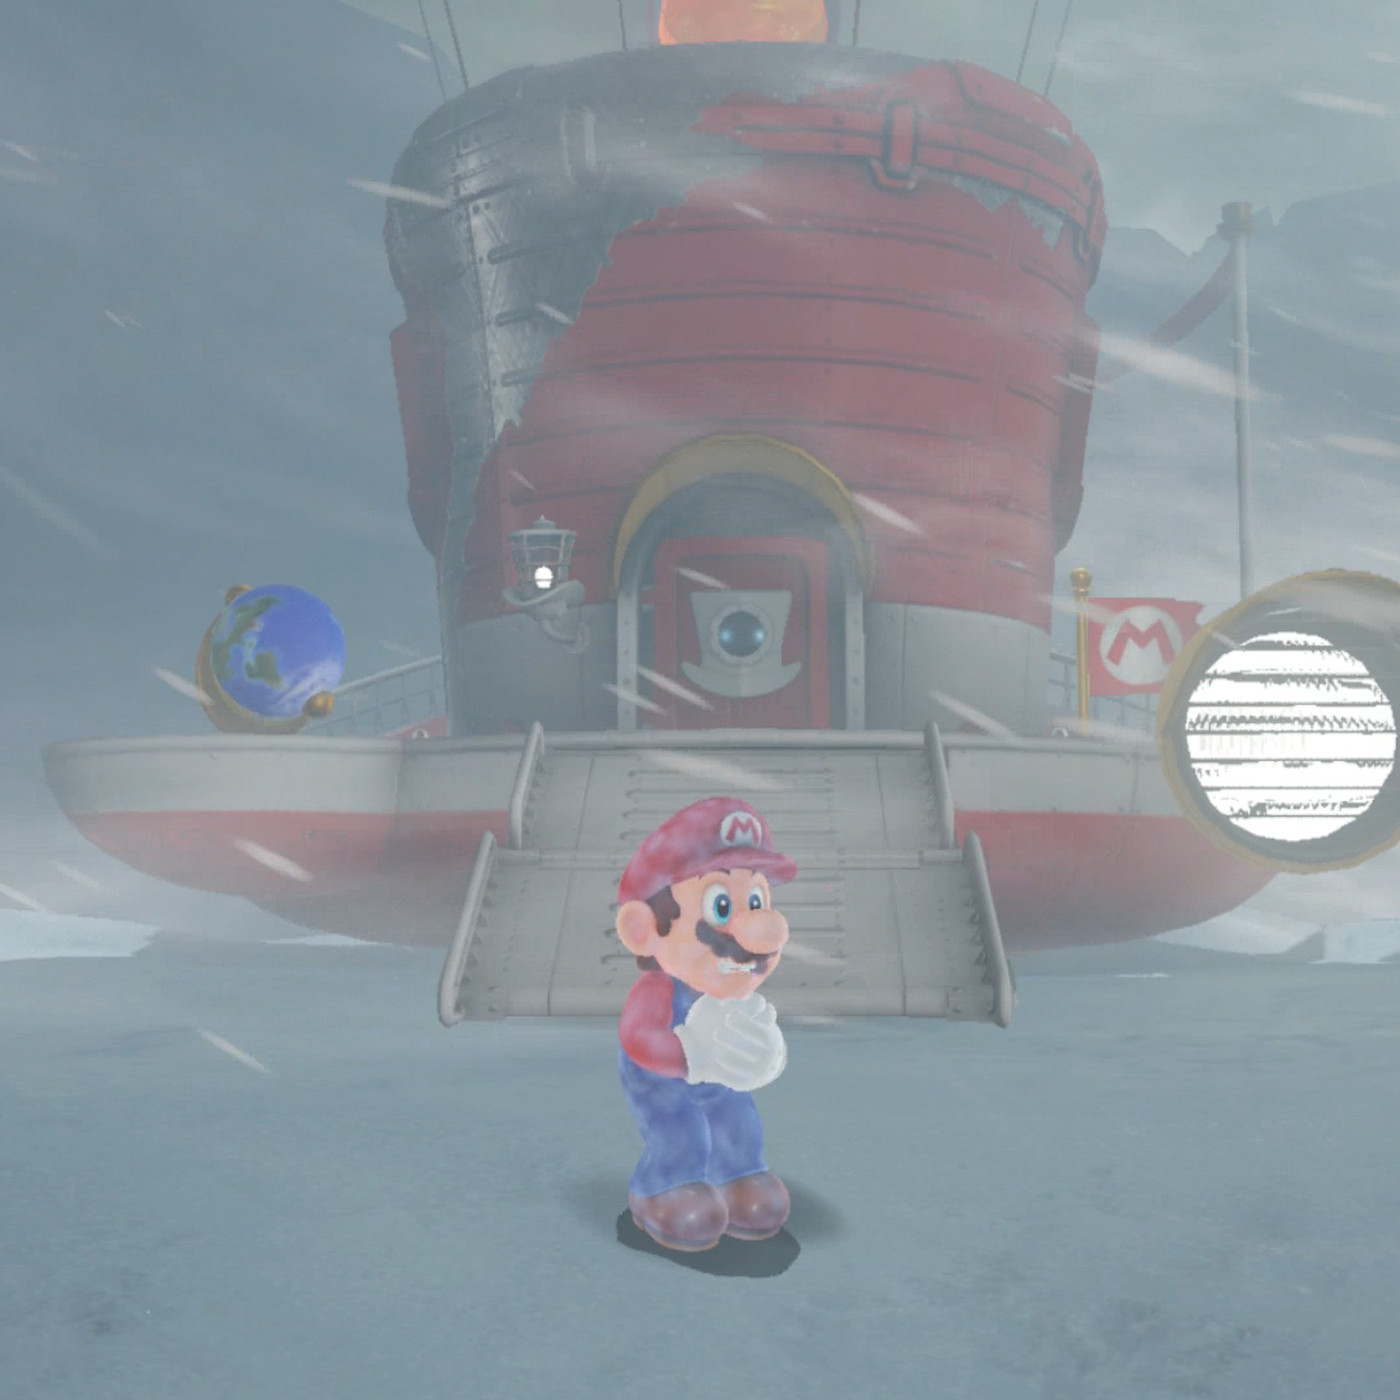 Super Mario Odyssey Guide Snow Kingdom All Power Moon Locations